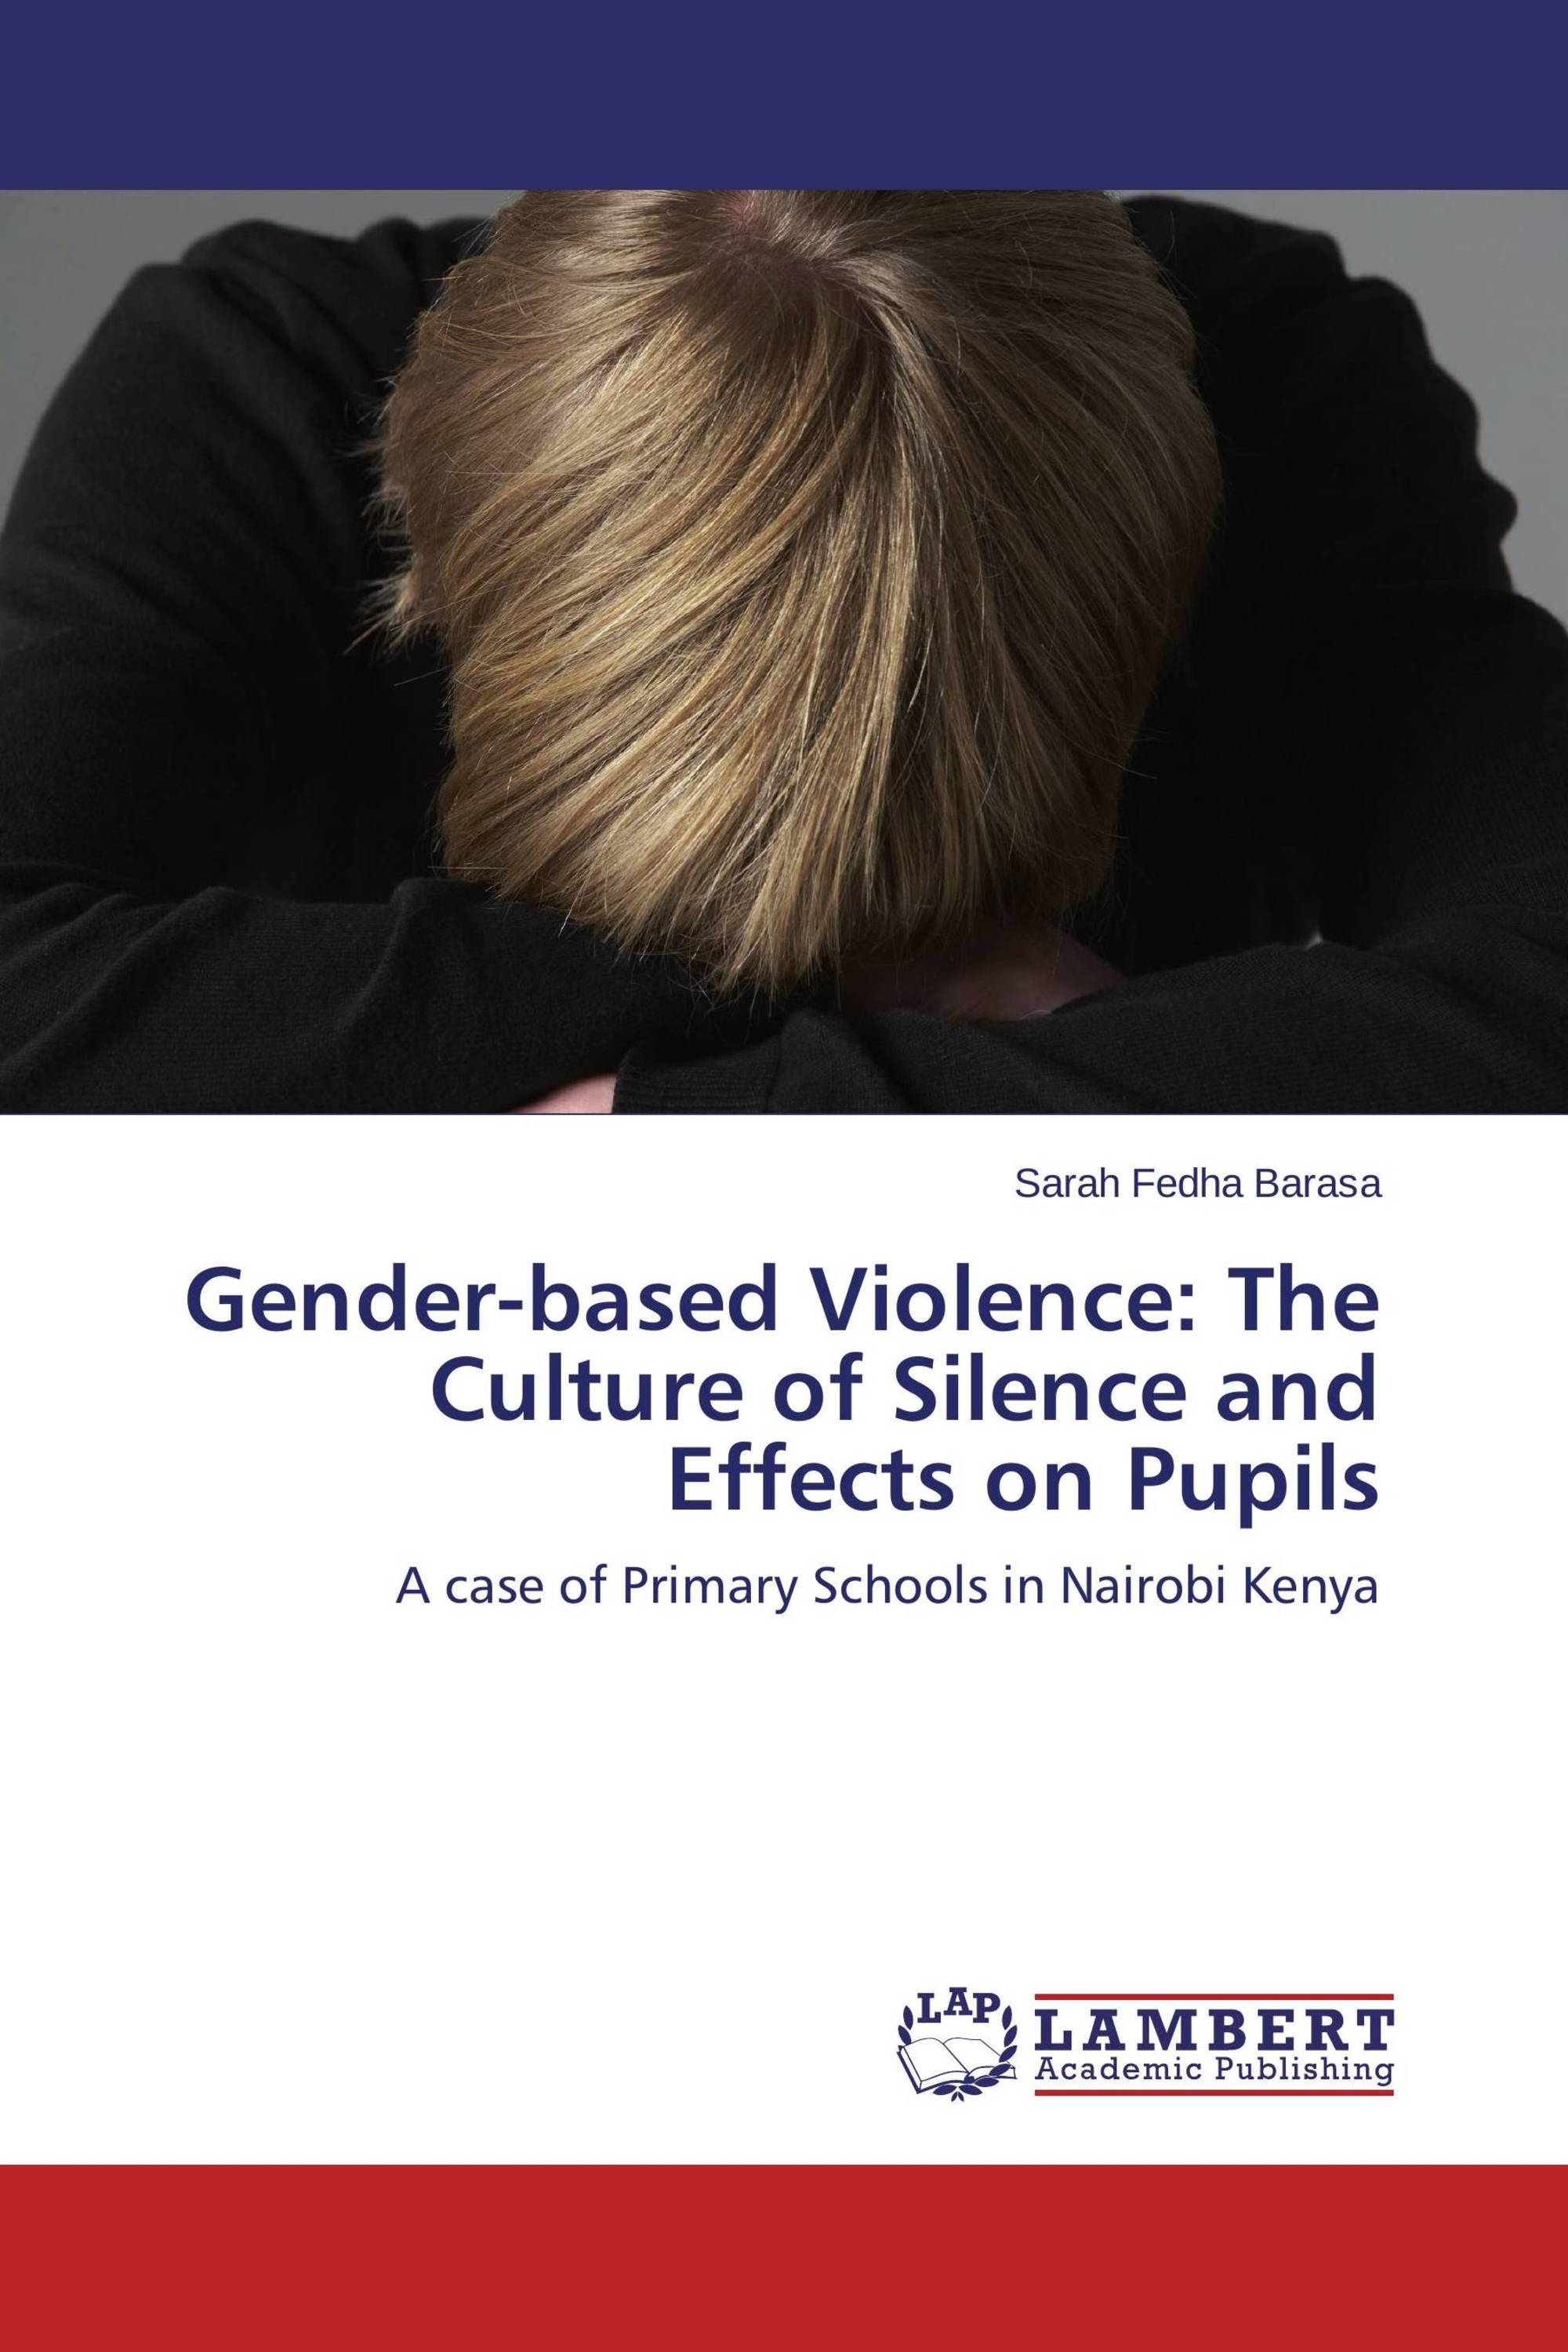 Gender-based Violence: The Culture of Silence and Effects on Pupils